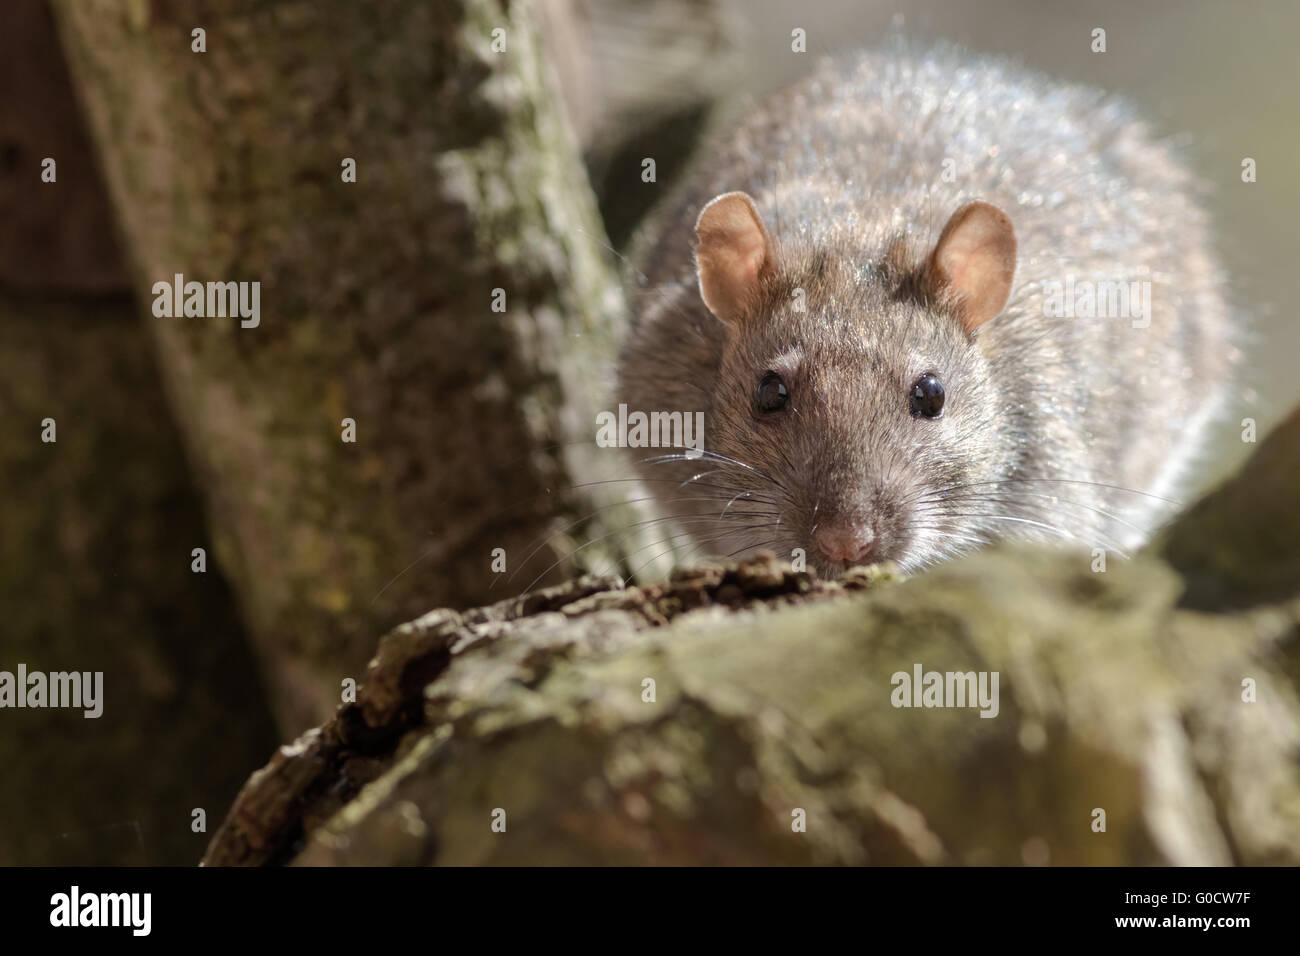 Rat en quête de nourriture Photo Stock